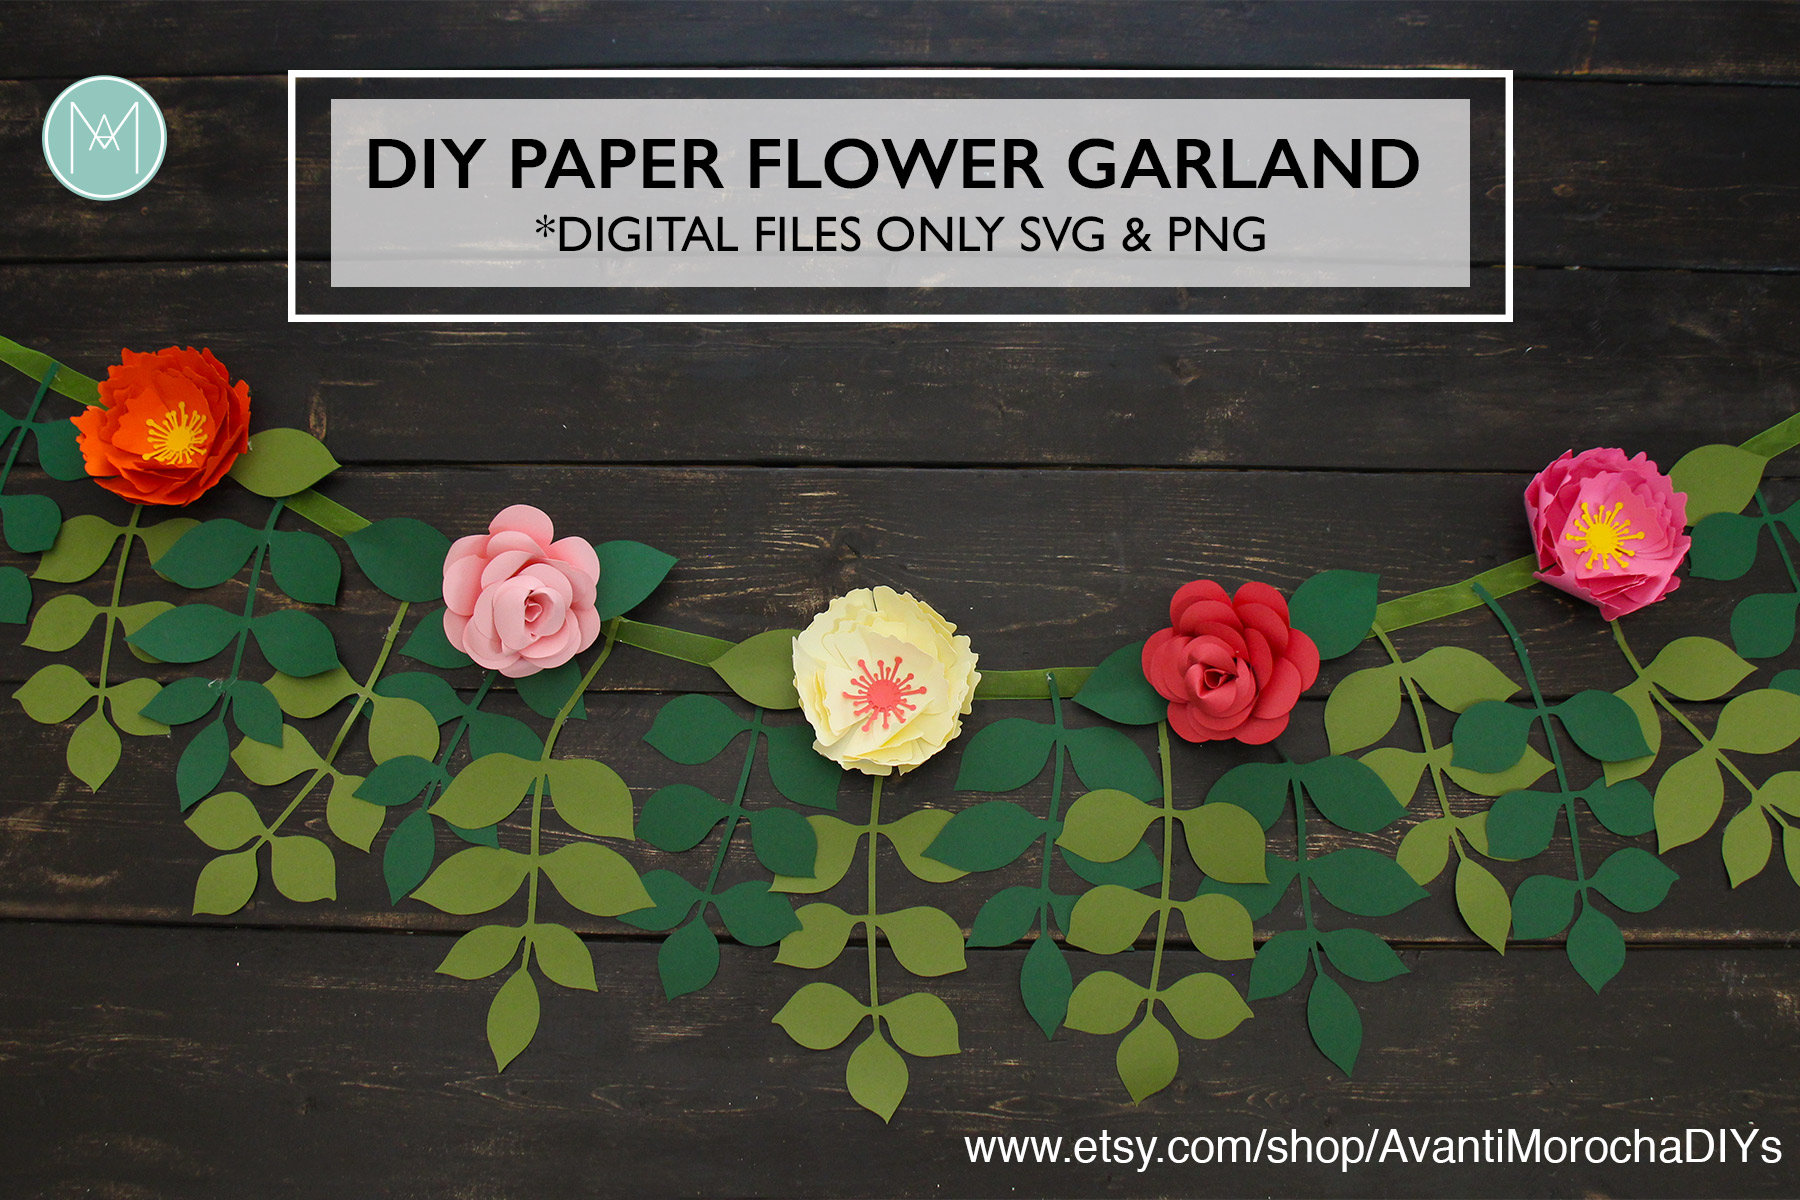 Diy paper flower garland patterns svg and png cricut cameo etsy zoom mightylinksfo